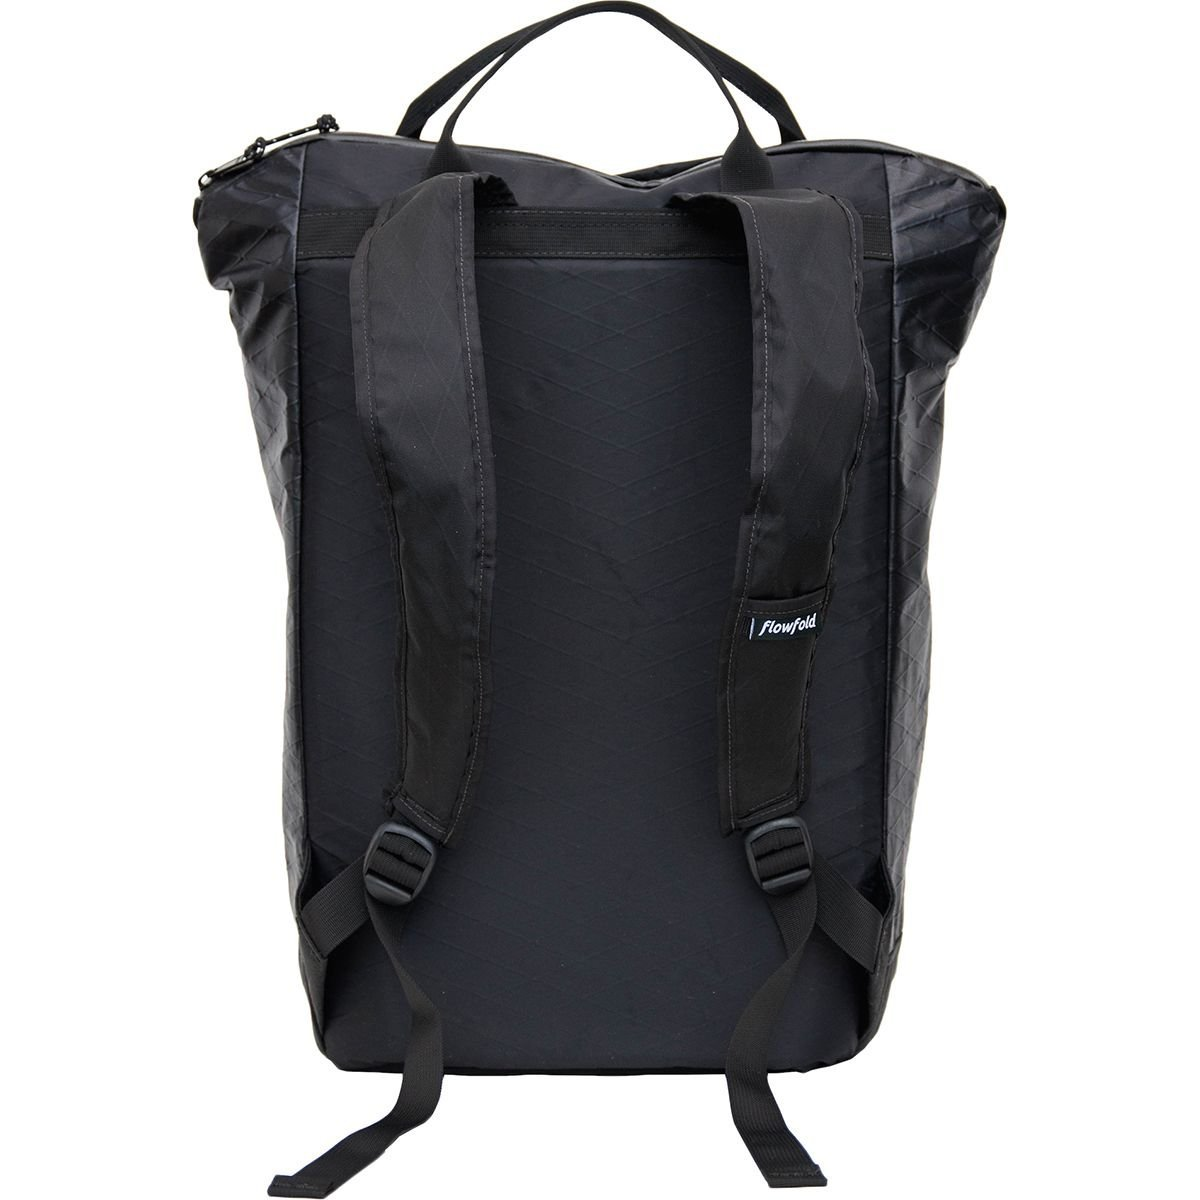 Amazon.com  Flowfold Denizen 18L Commuter Backpack - Ultra Light Laptop  Pack - Water Repellent - Urban to Outdoor - Made in USA - Olive  Flowfold cc9533d329